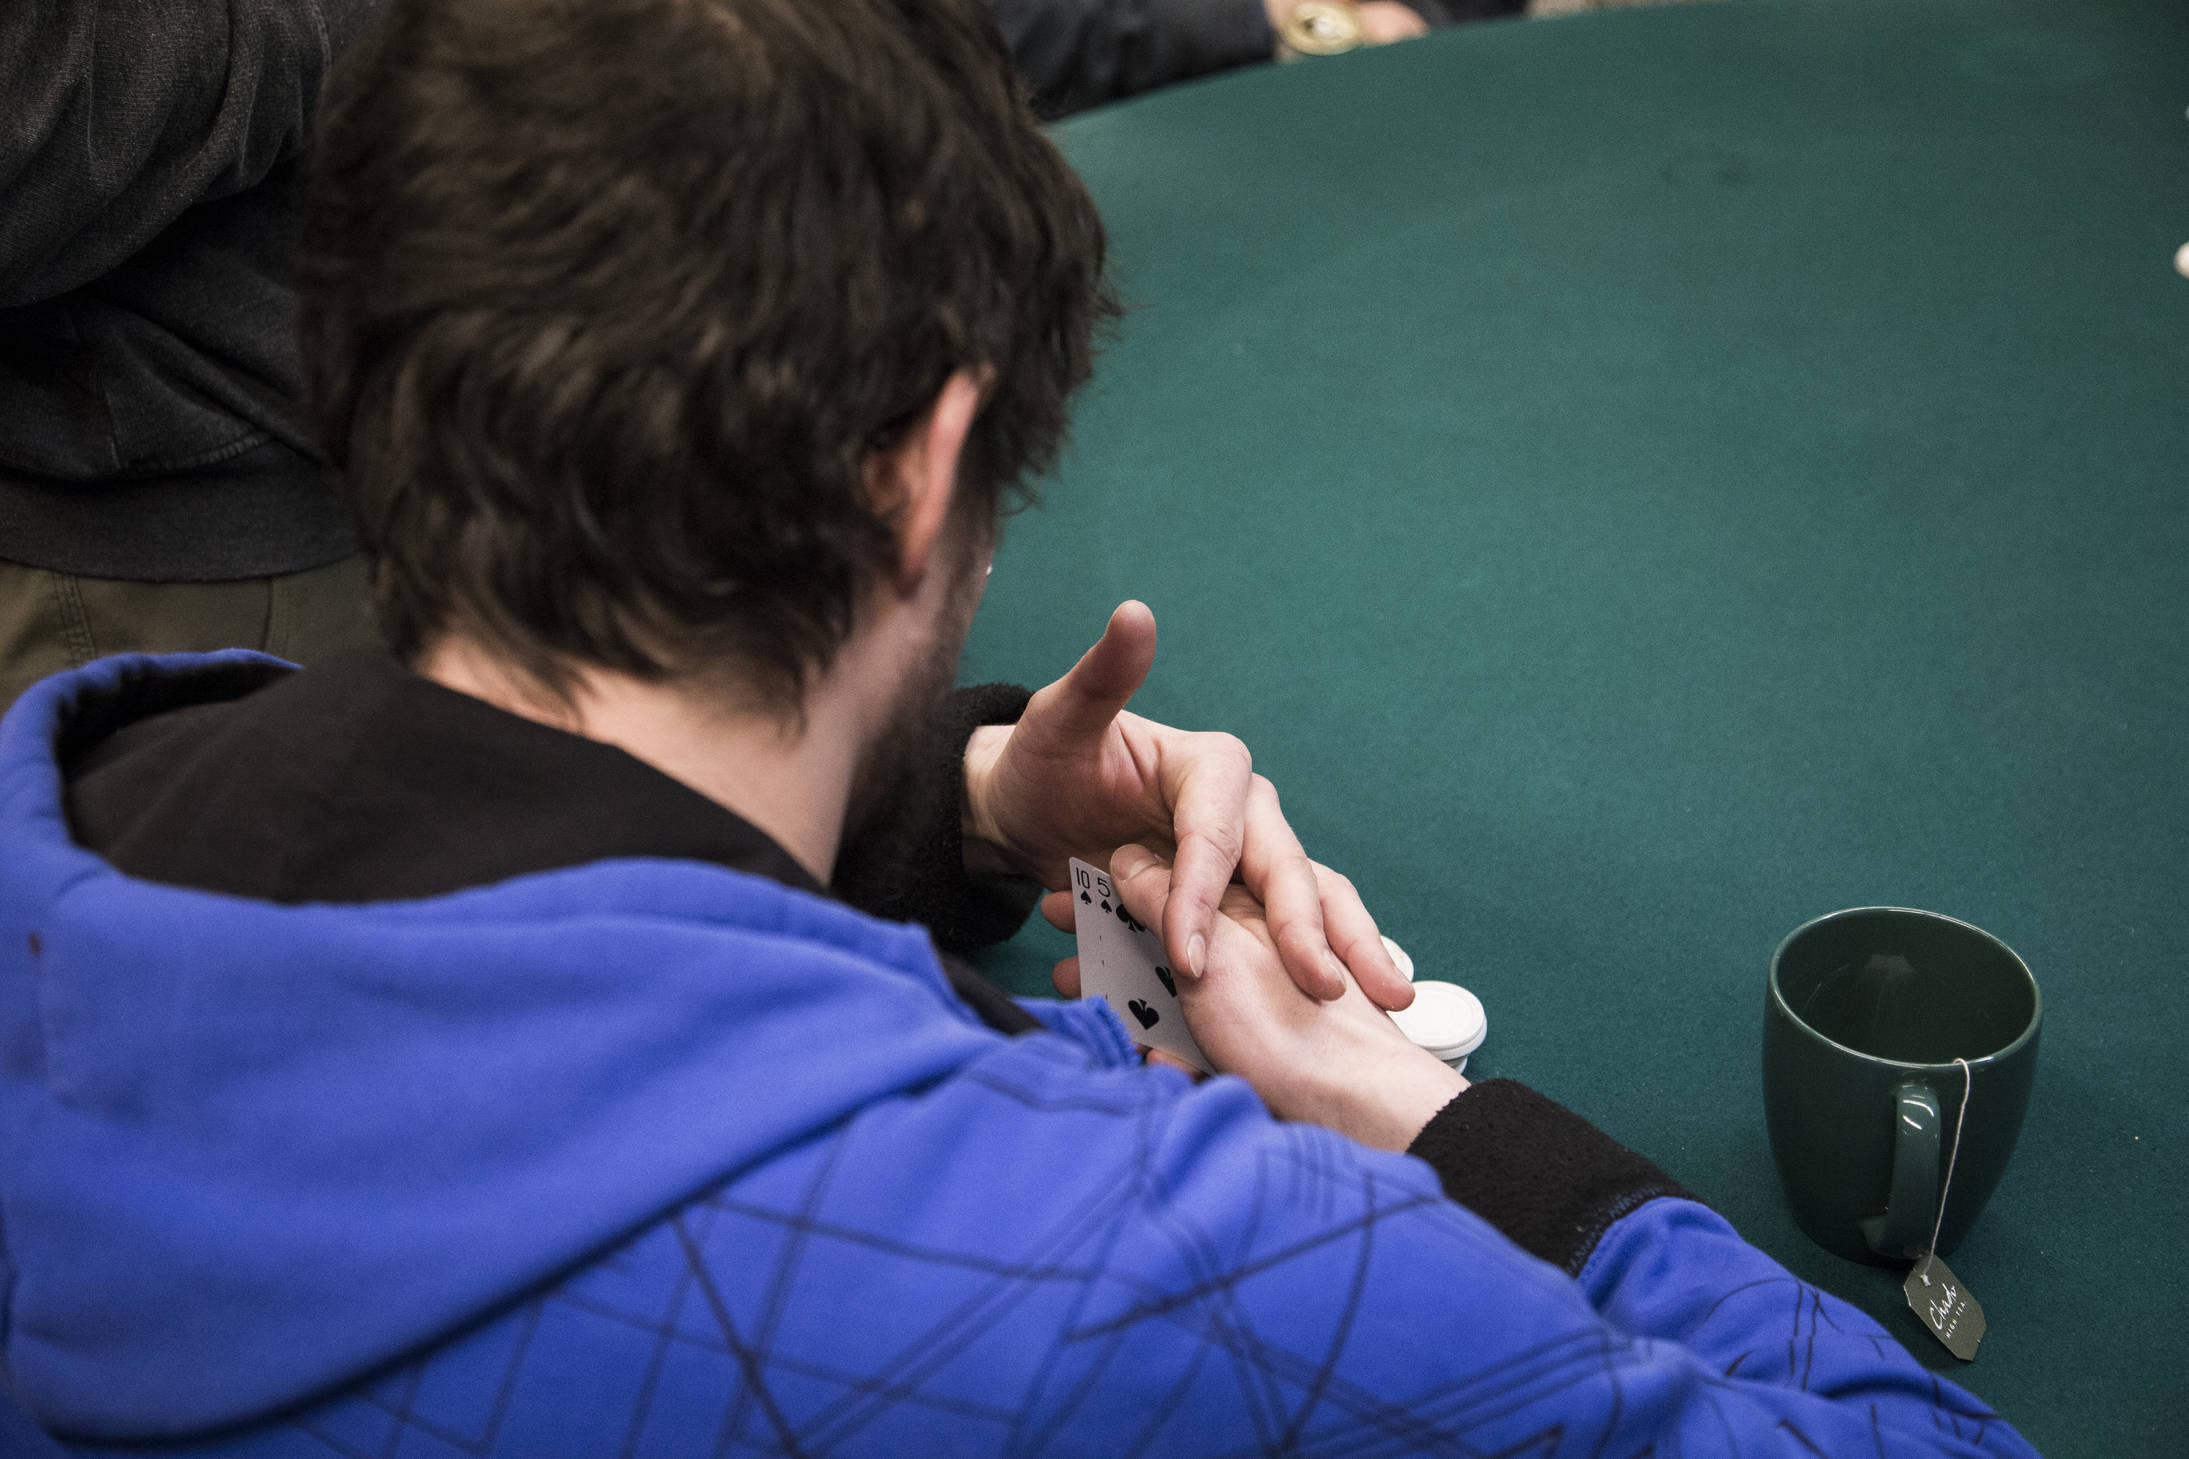 Midwinter poker tournament (Photo: Gavin Chensue).